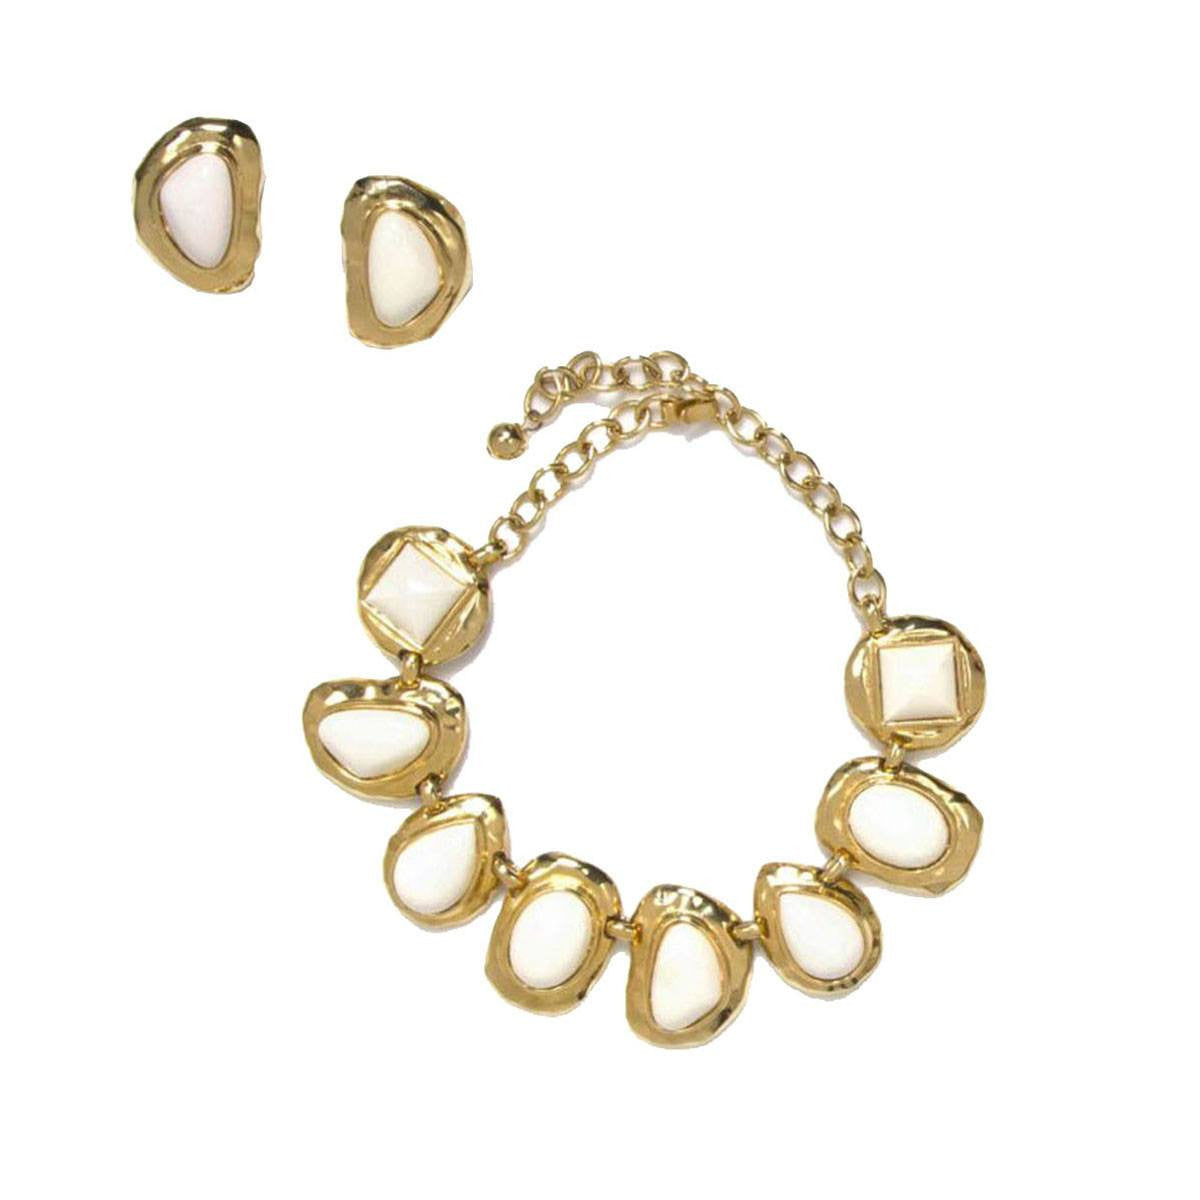 Les Bernard Modernist Necklace & Earrings Set